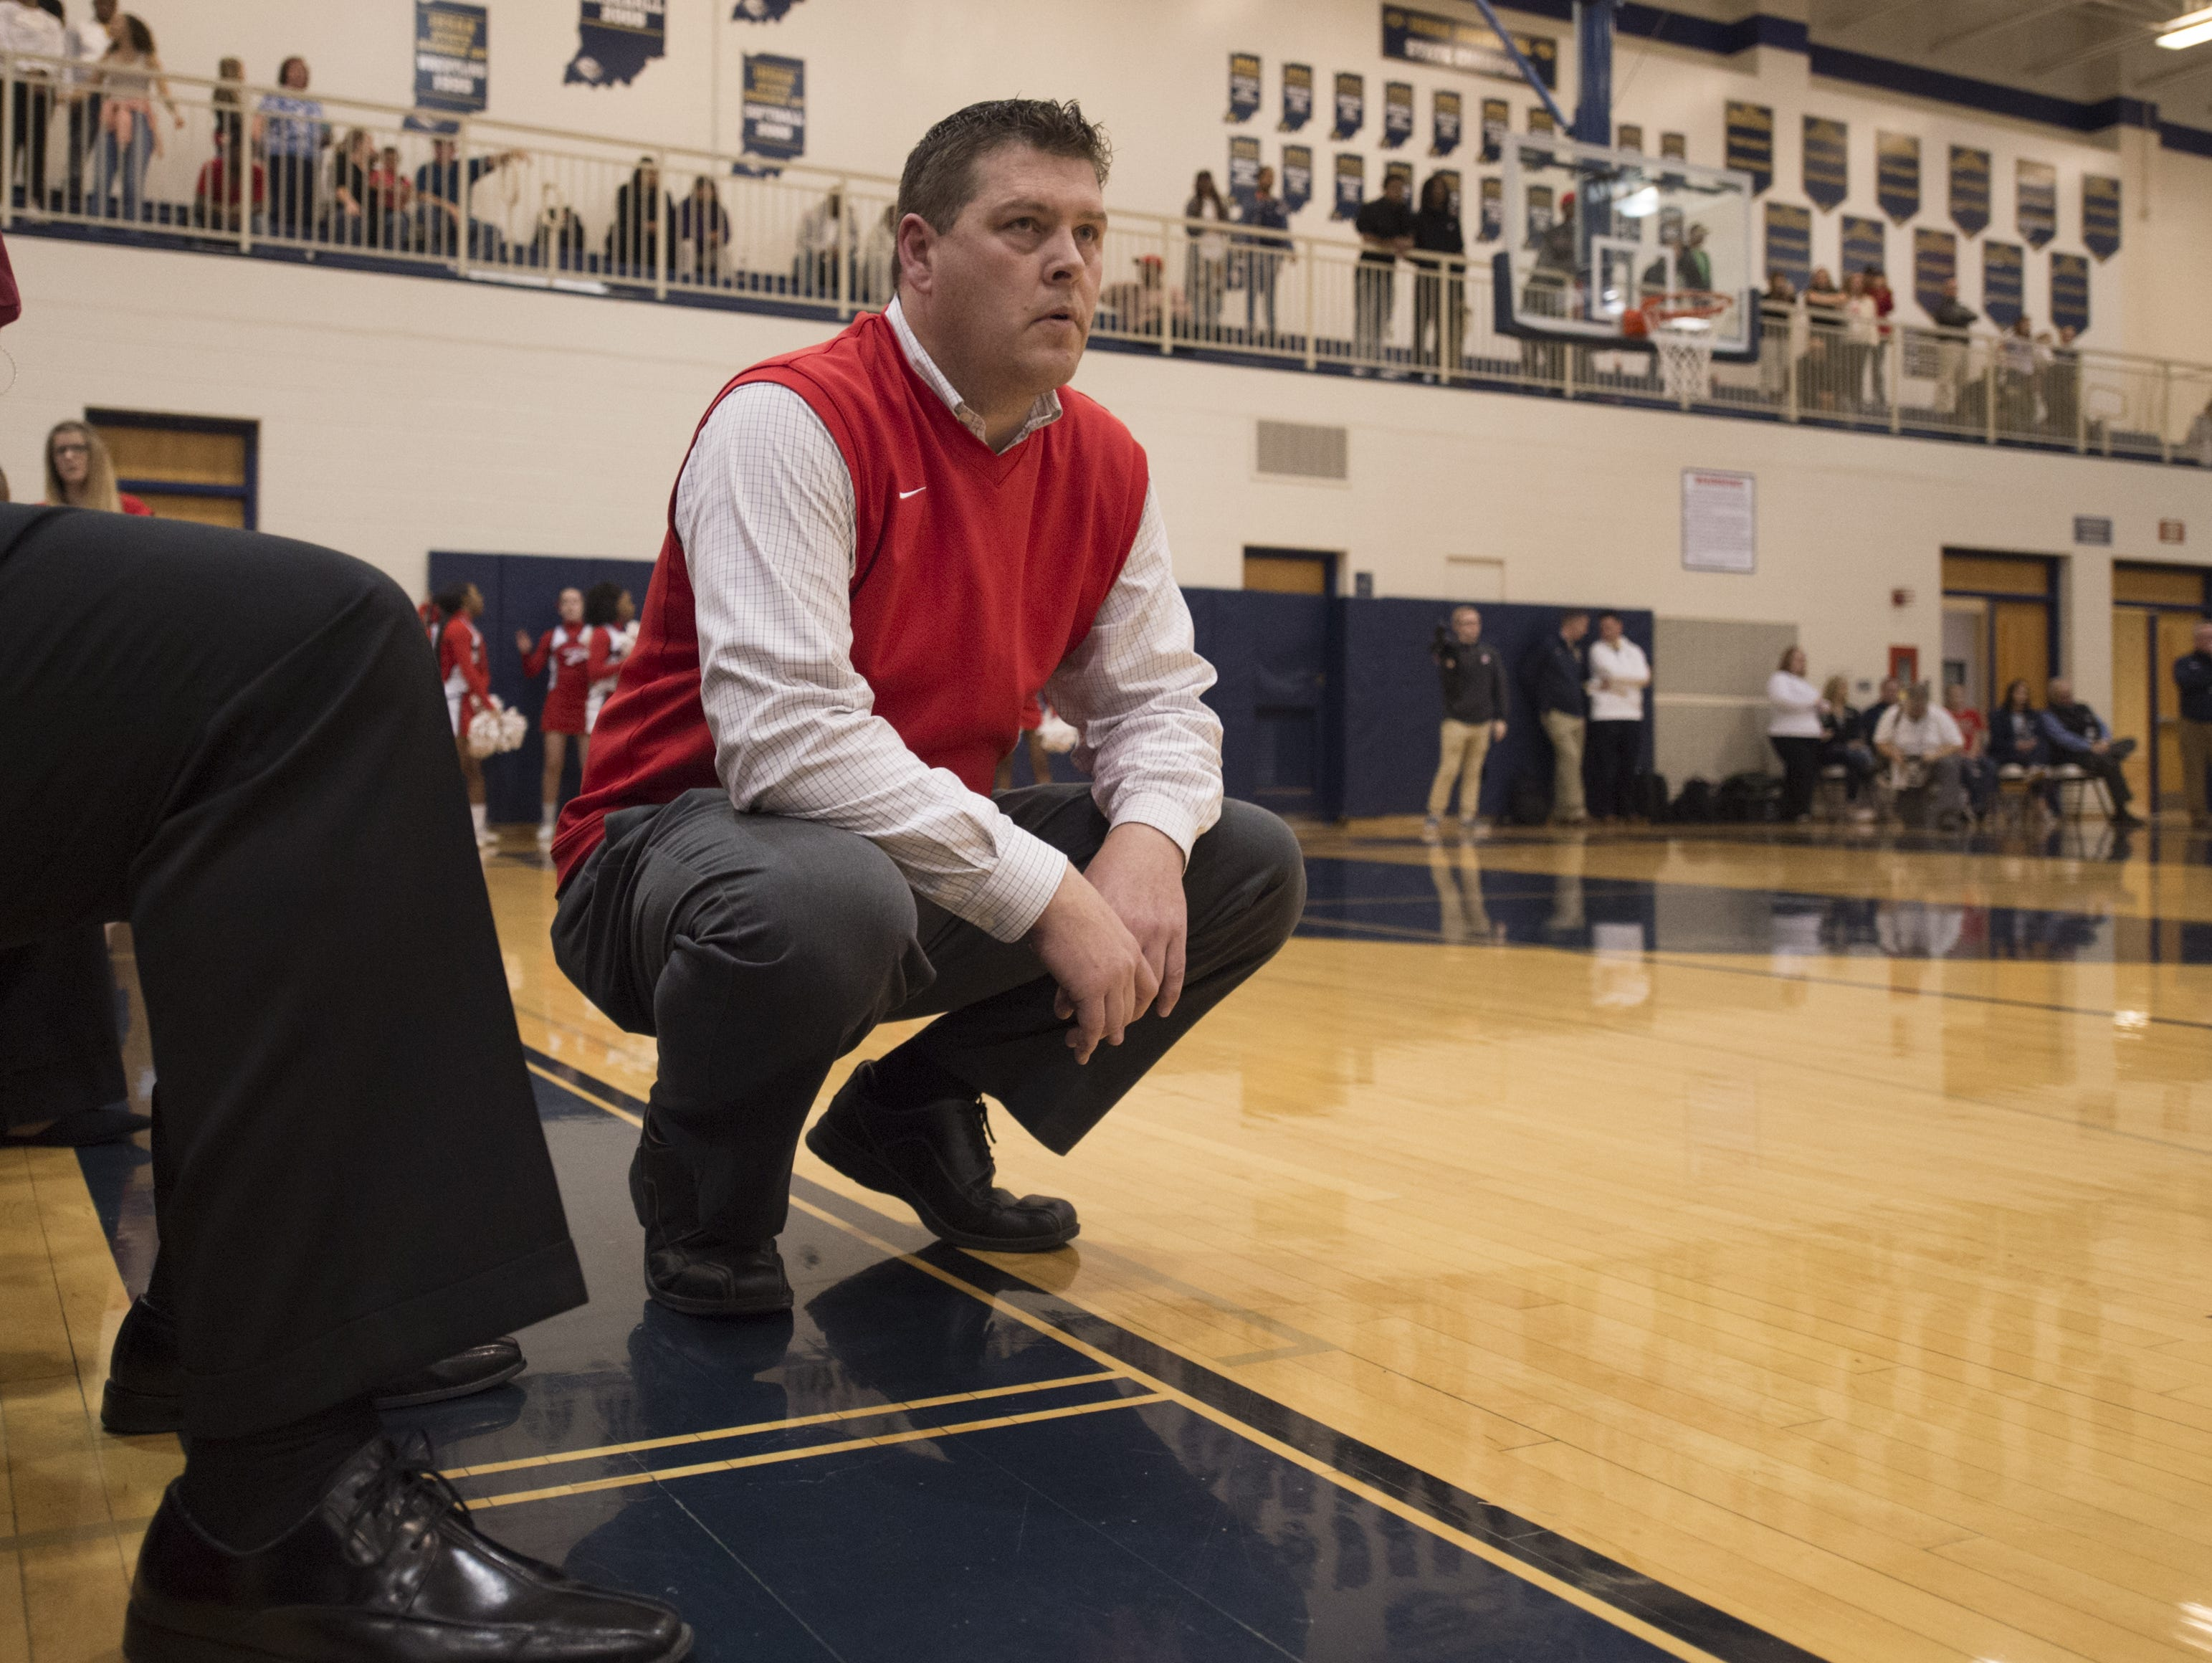 After sitting out last year, Pike coach Bob Anglea returned to the bench this season and has the Red Devils one win from a state title.